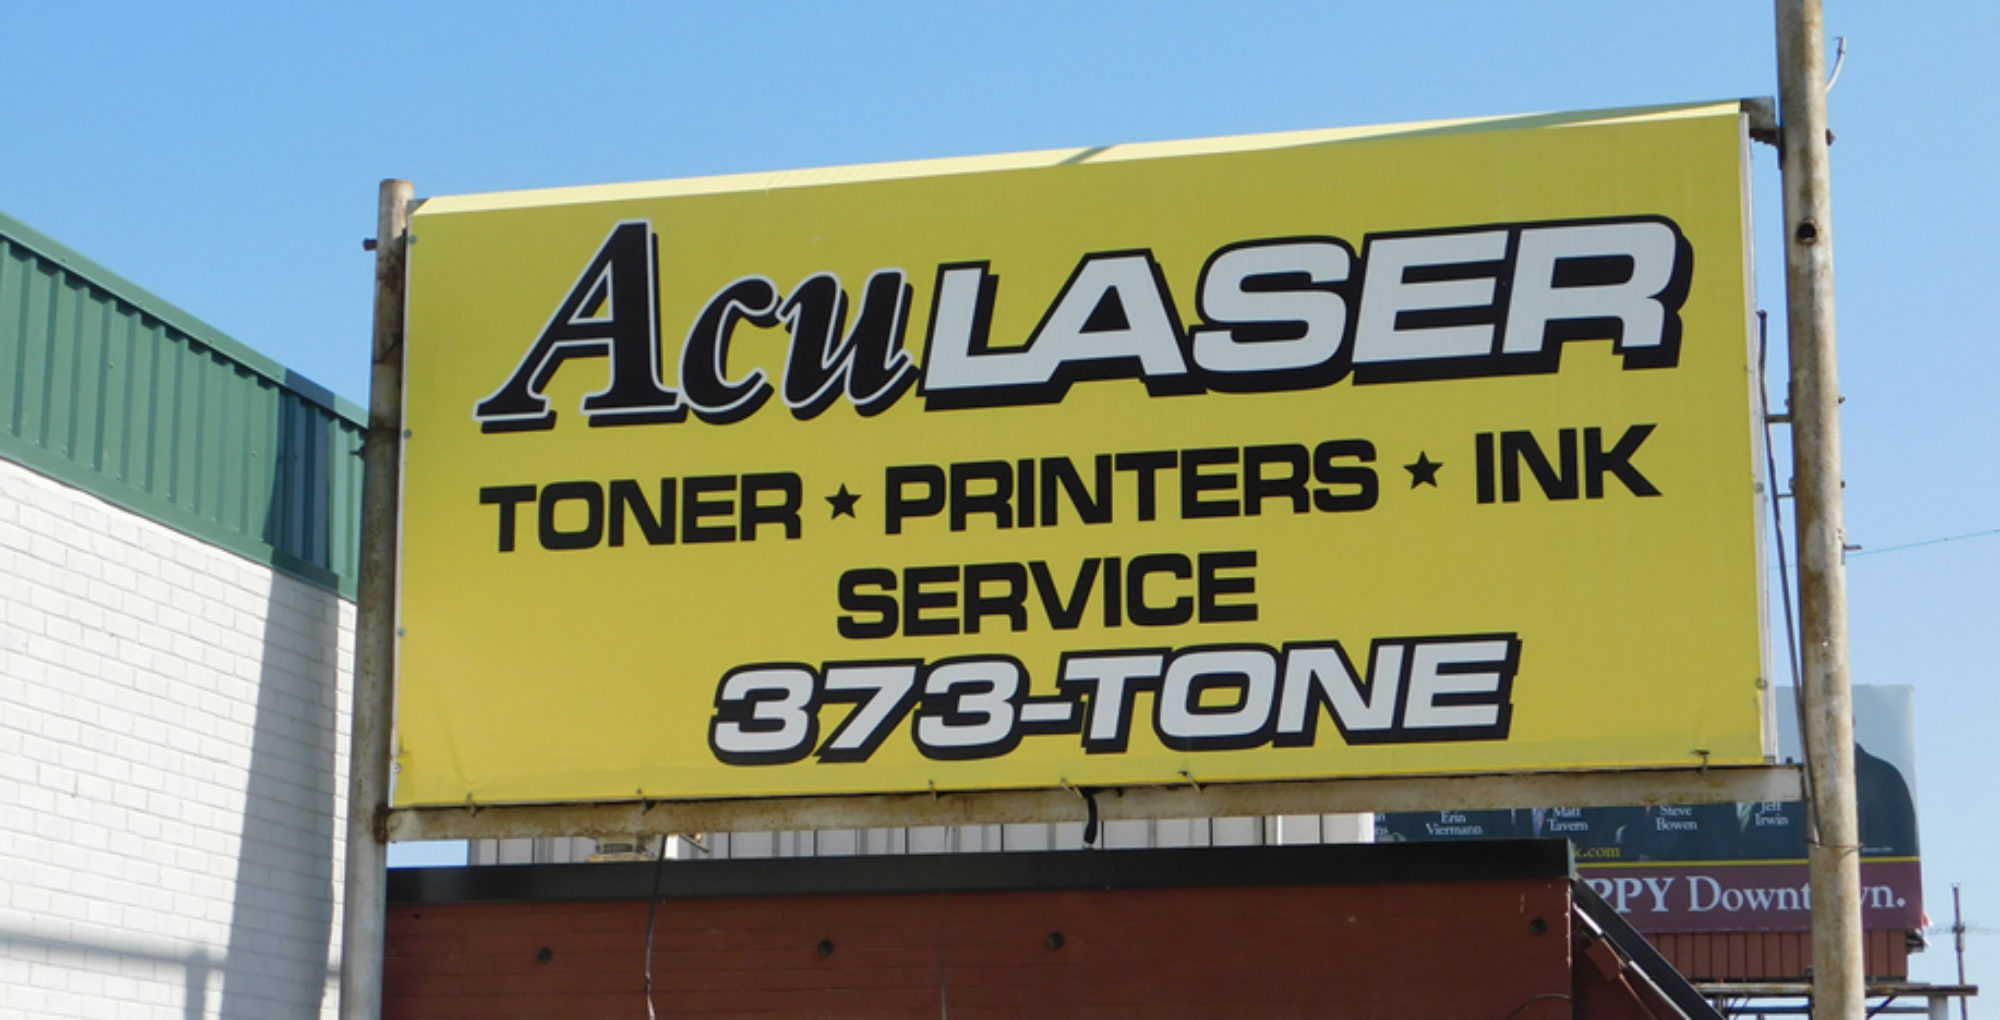 AcuLaser Toner Supply